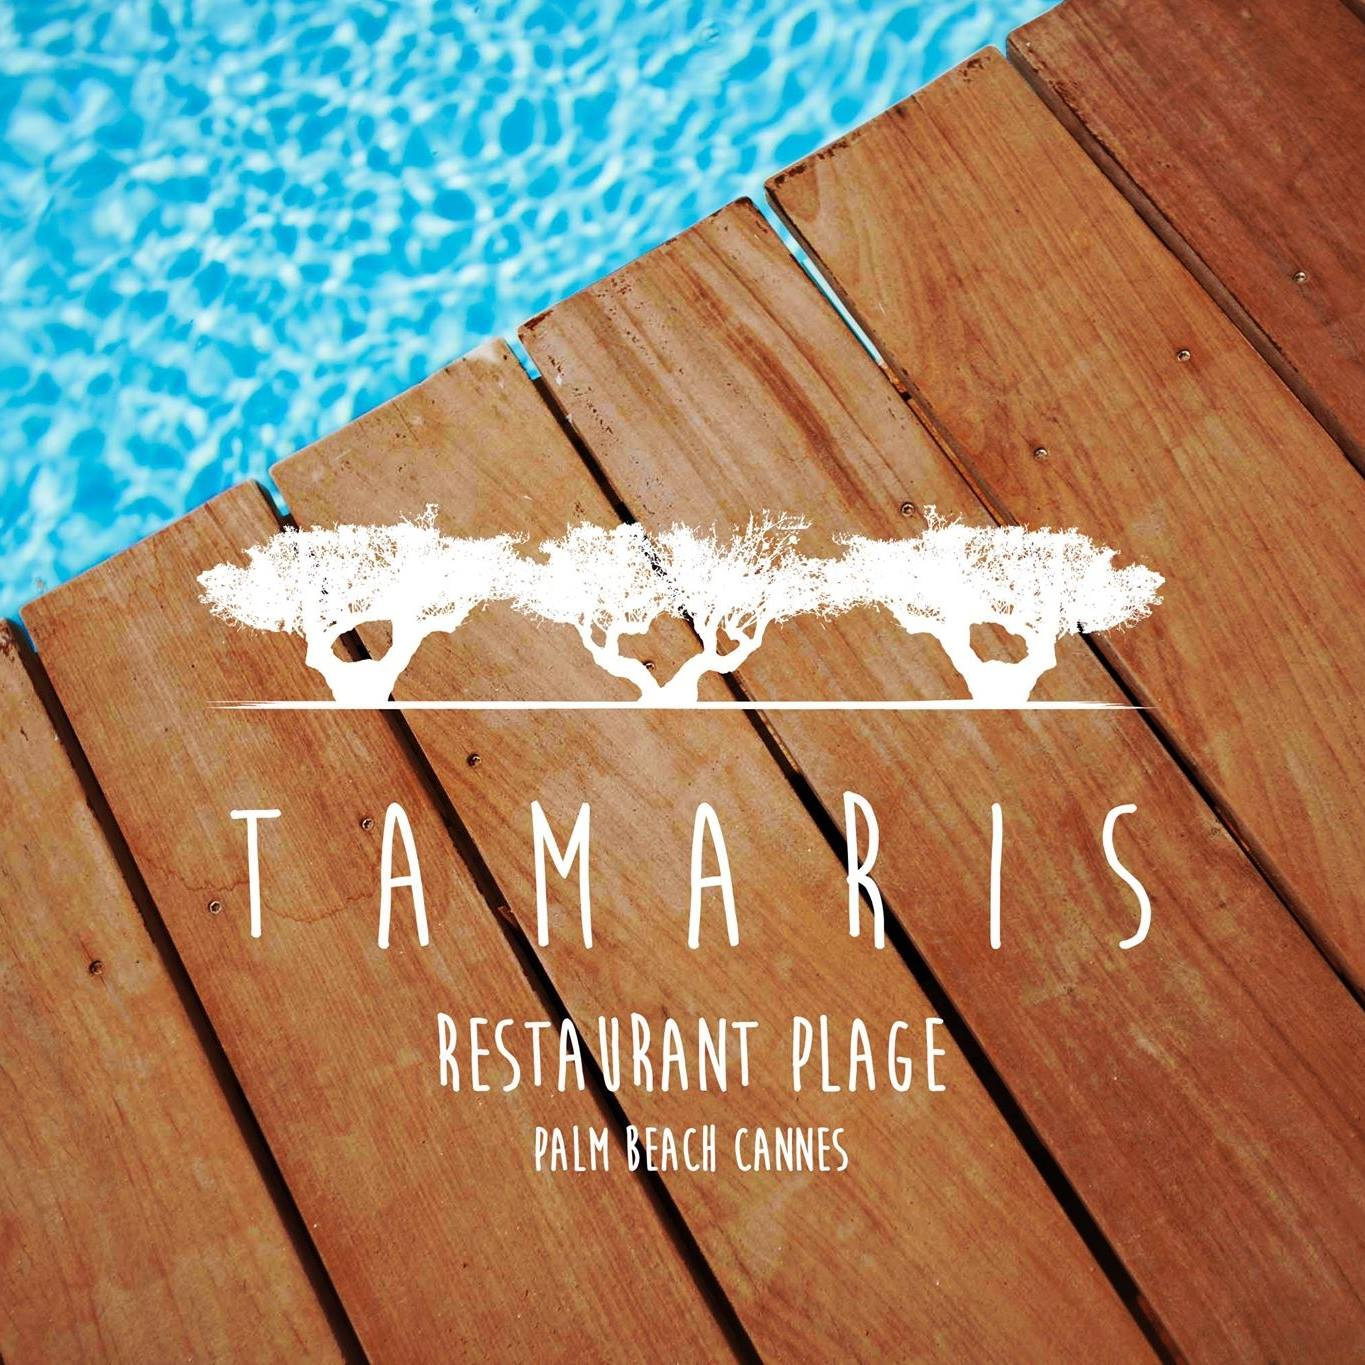 opening tamaris plage au palm beach cannes, soiree dj, plage chic